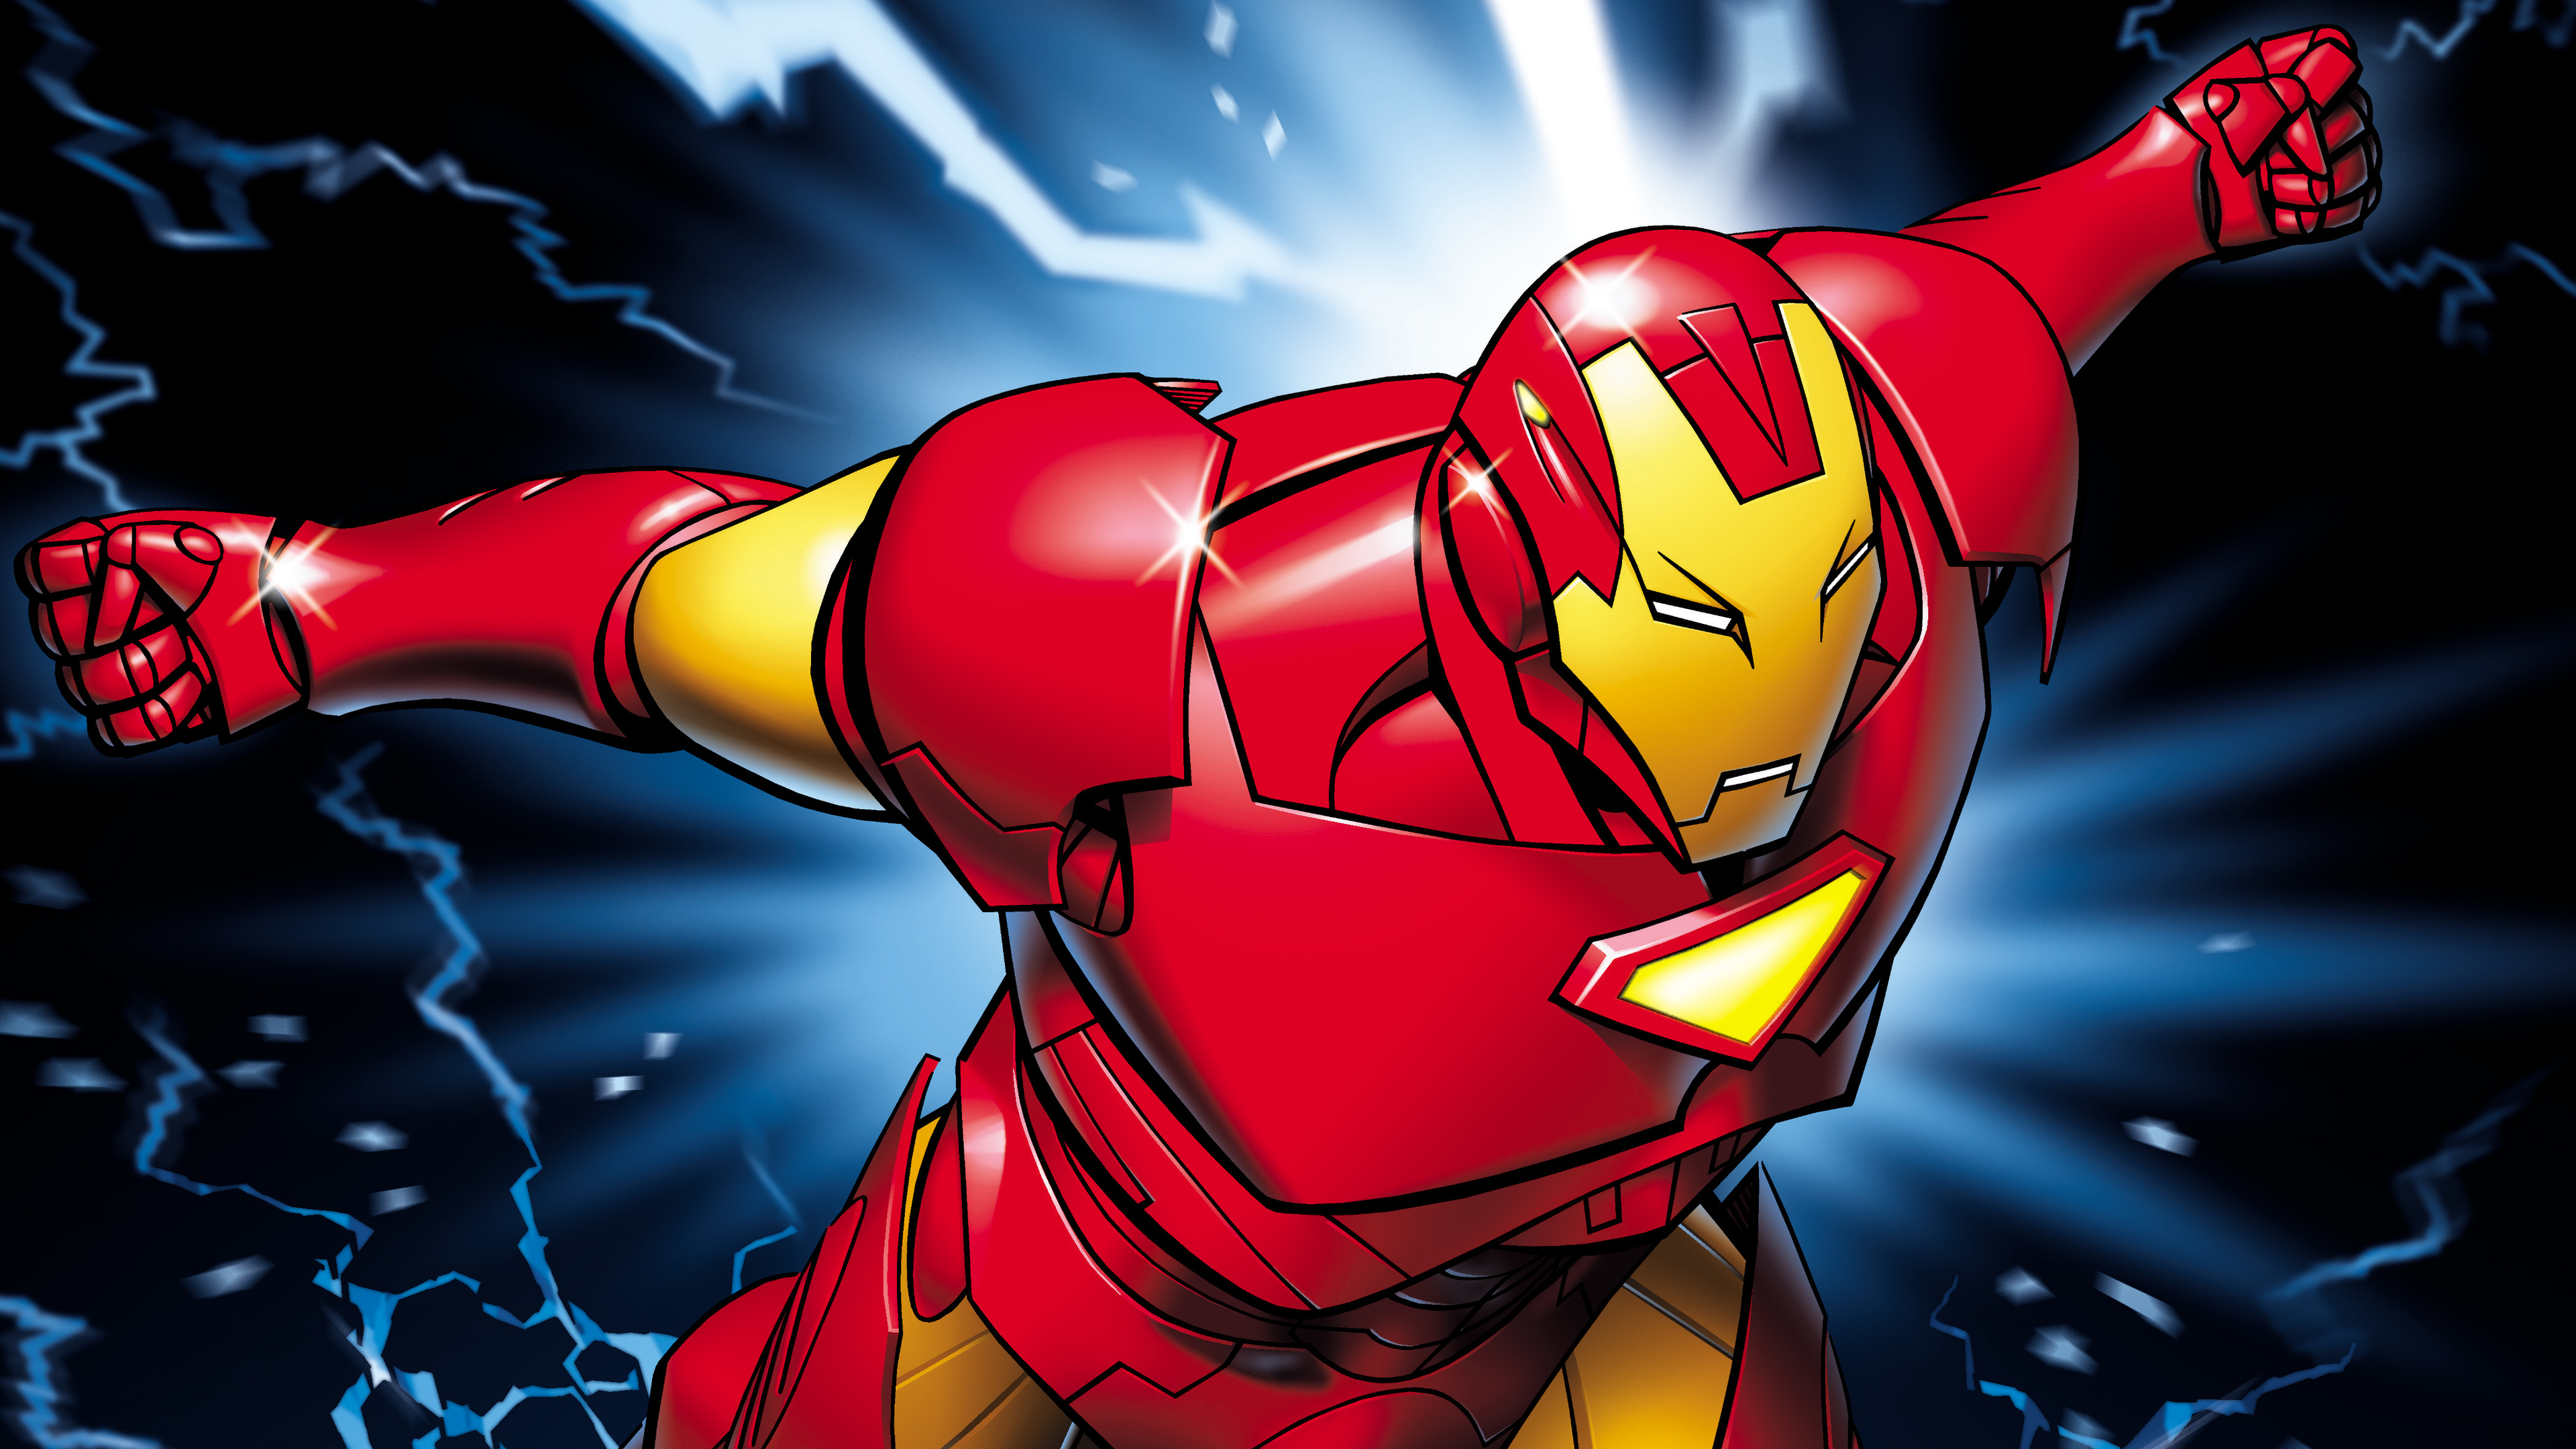 4k iron man new artwork 1556184896 - 4k Iron Man New Artwork - superheroes wallpapers, iron man wallpapers, hd-wallpapers, digital art wallpapers, artwork wallpapers, 4k-wallpapers